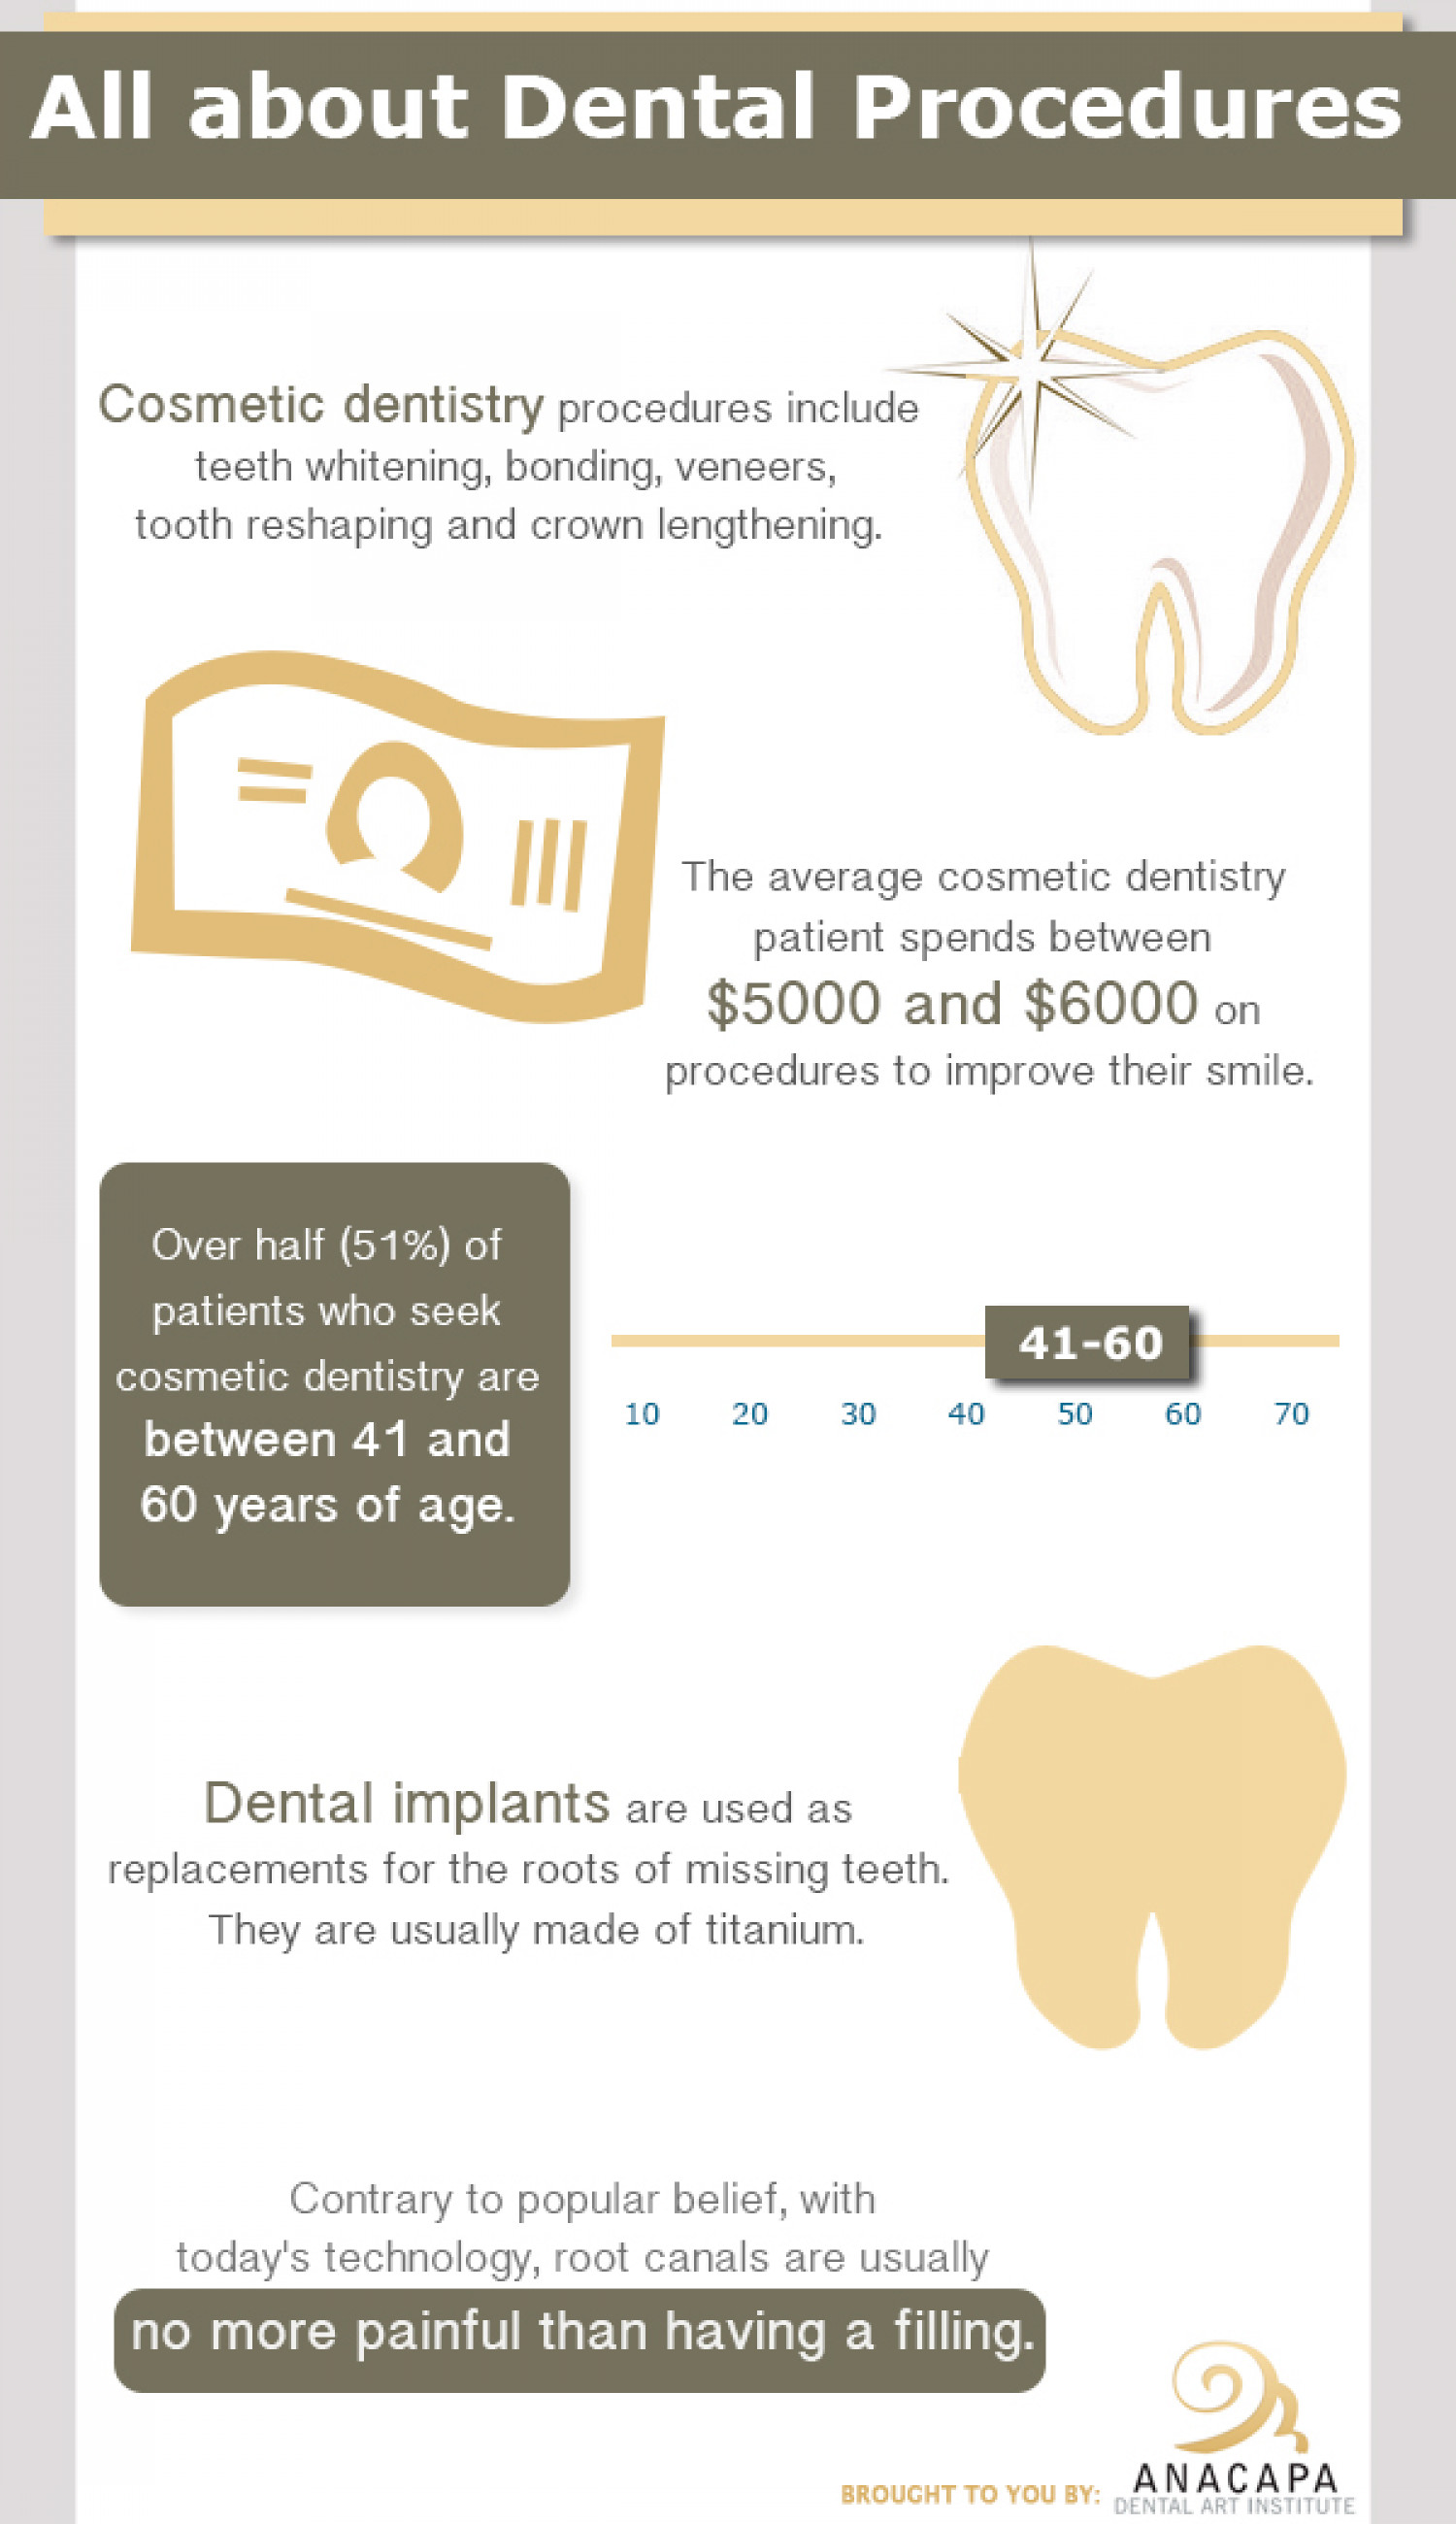 All About Dental Procedures Infographic